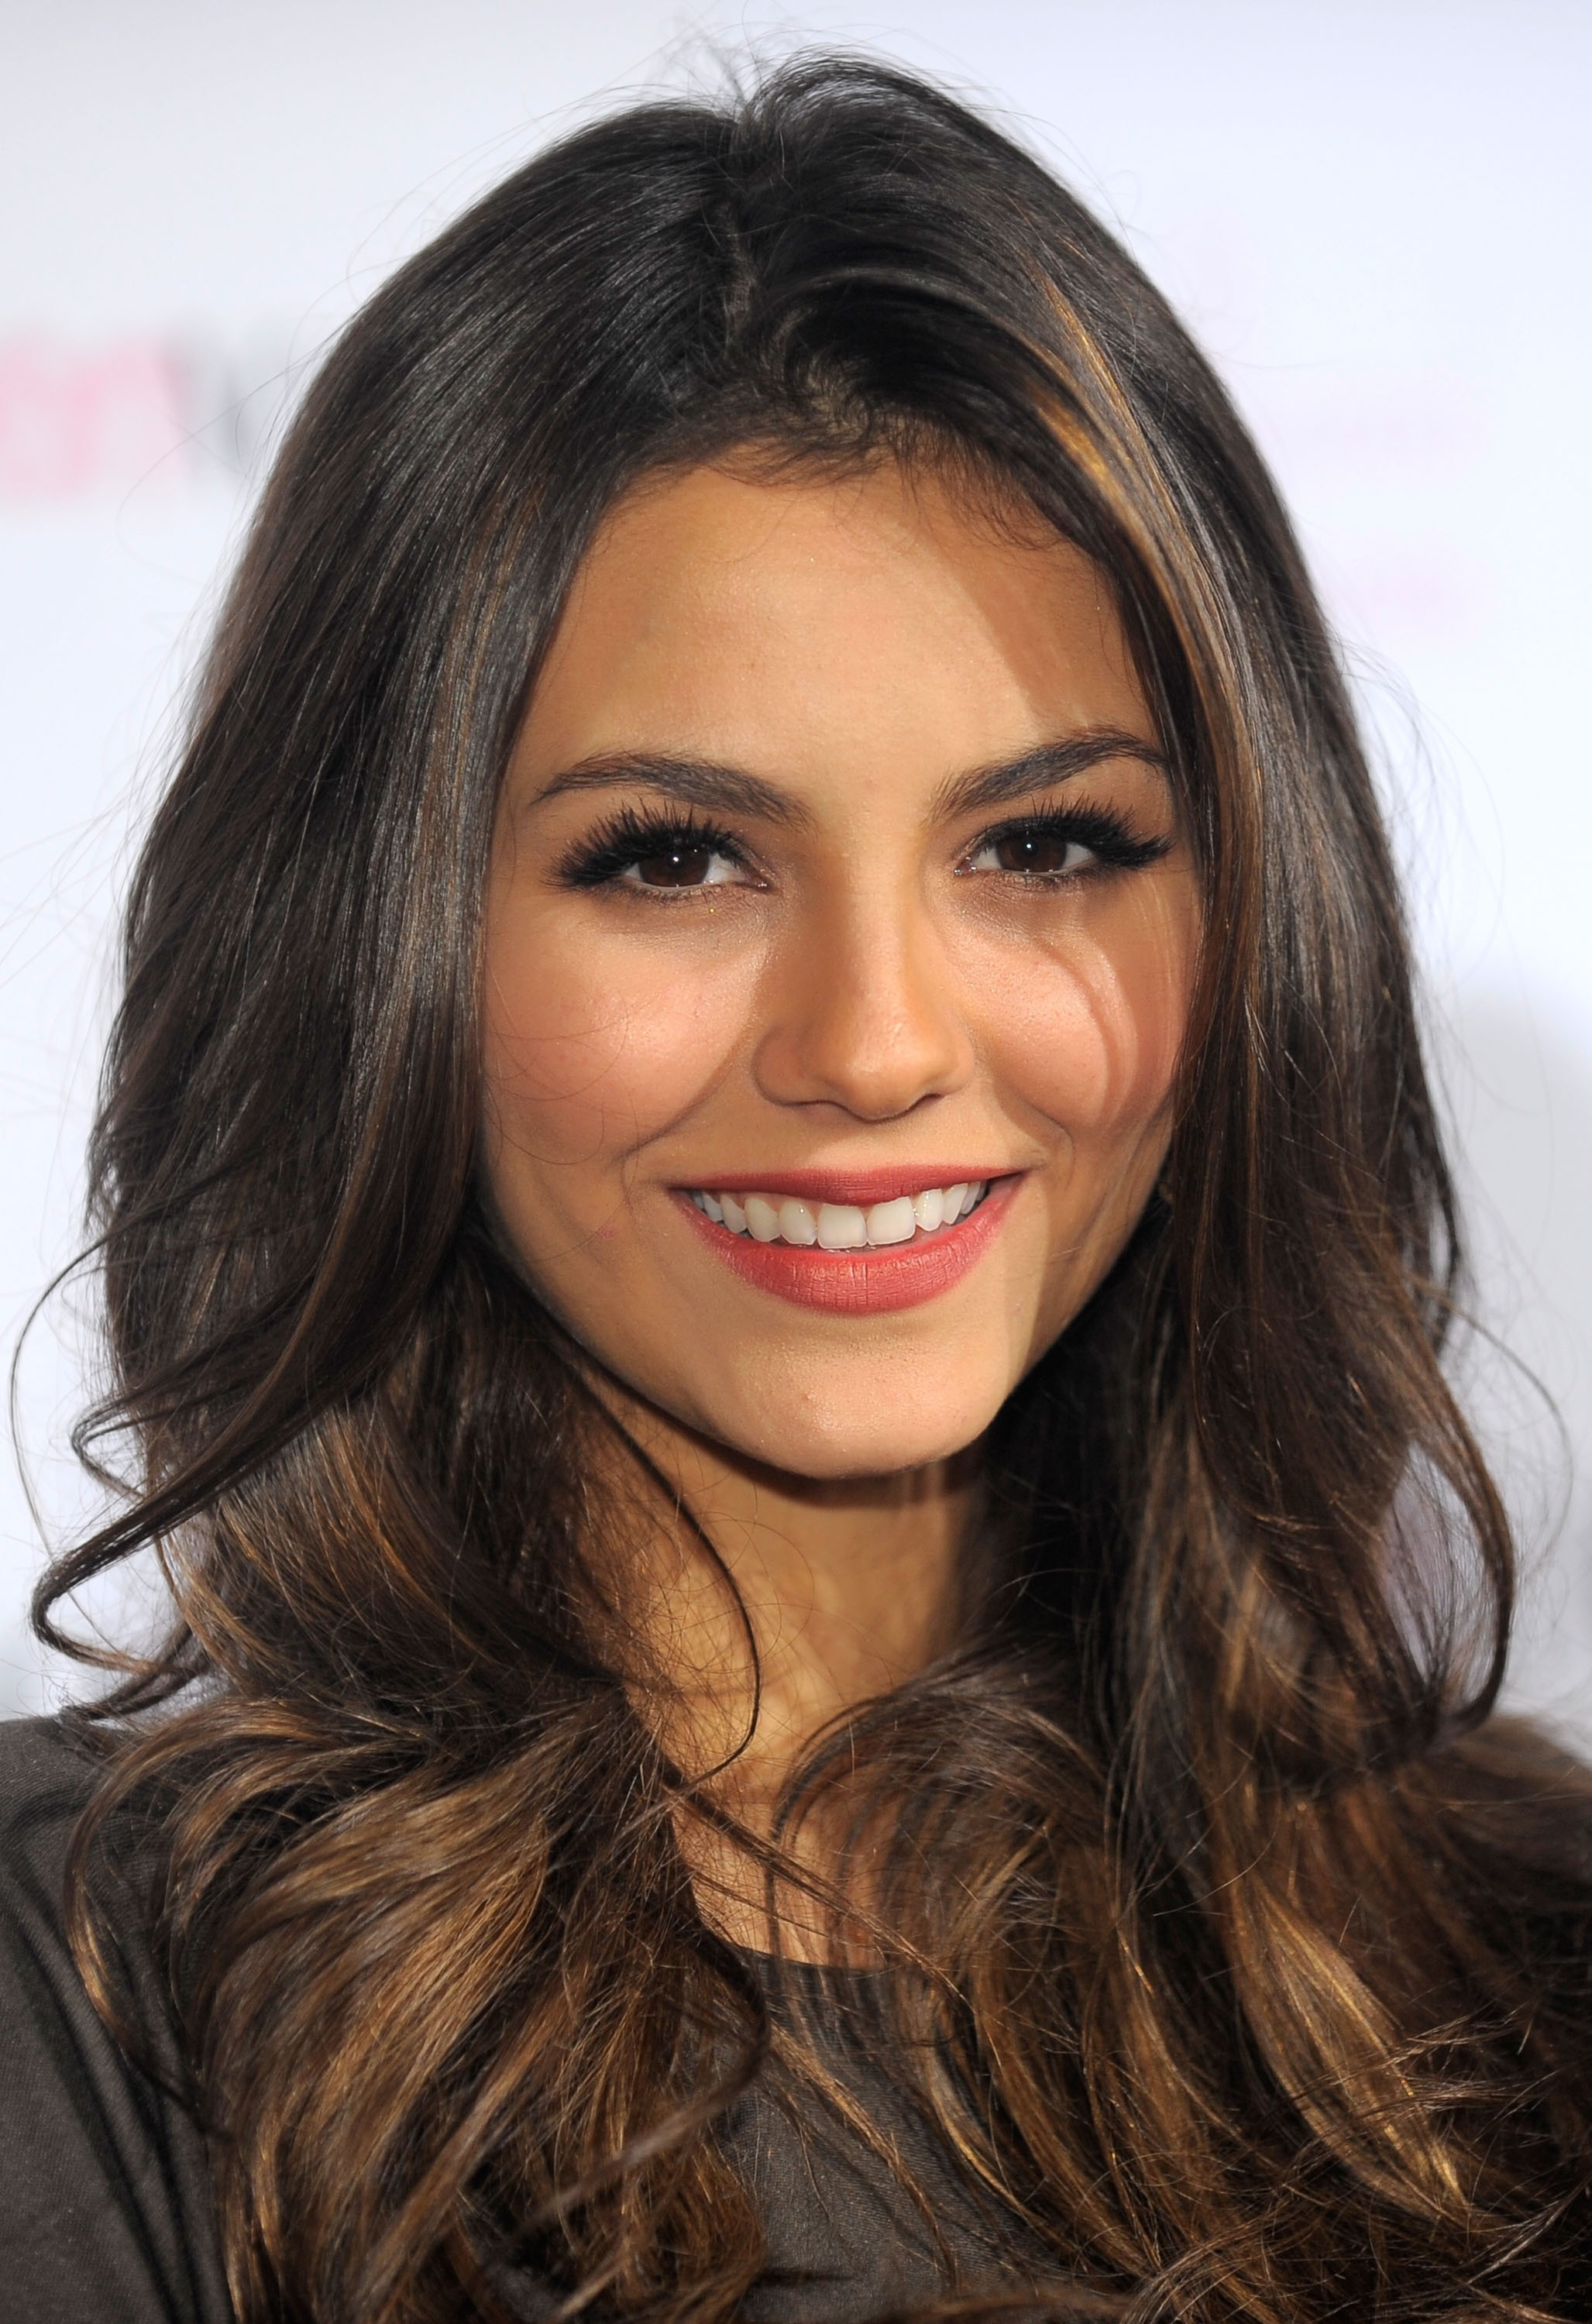 woman victoria justice brunettes singers HD Wallpaper